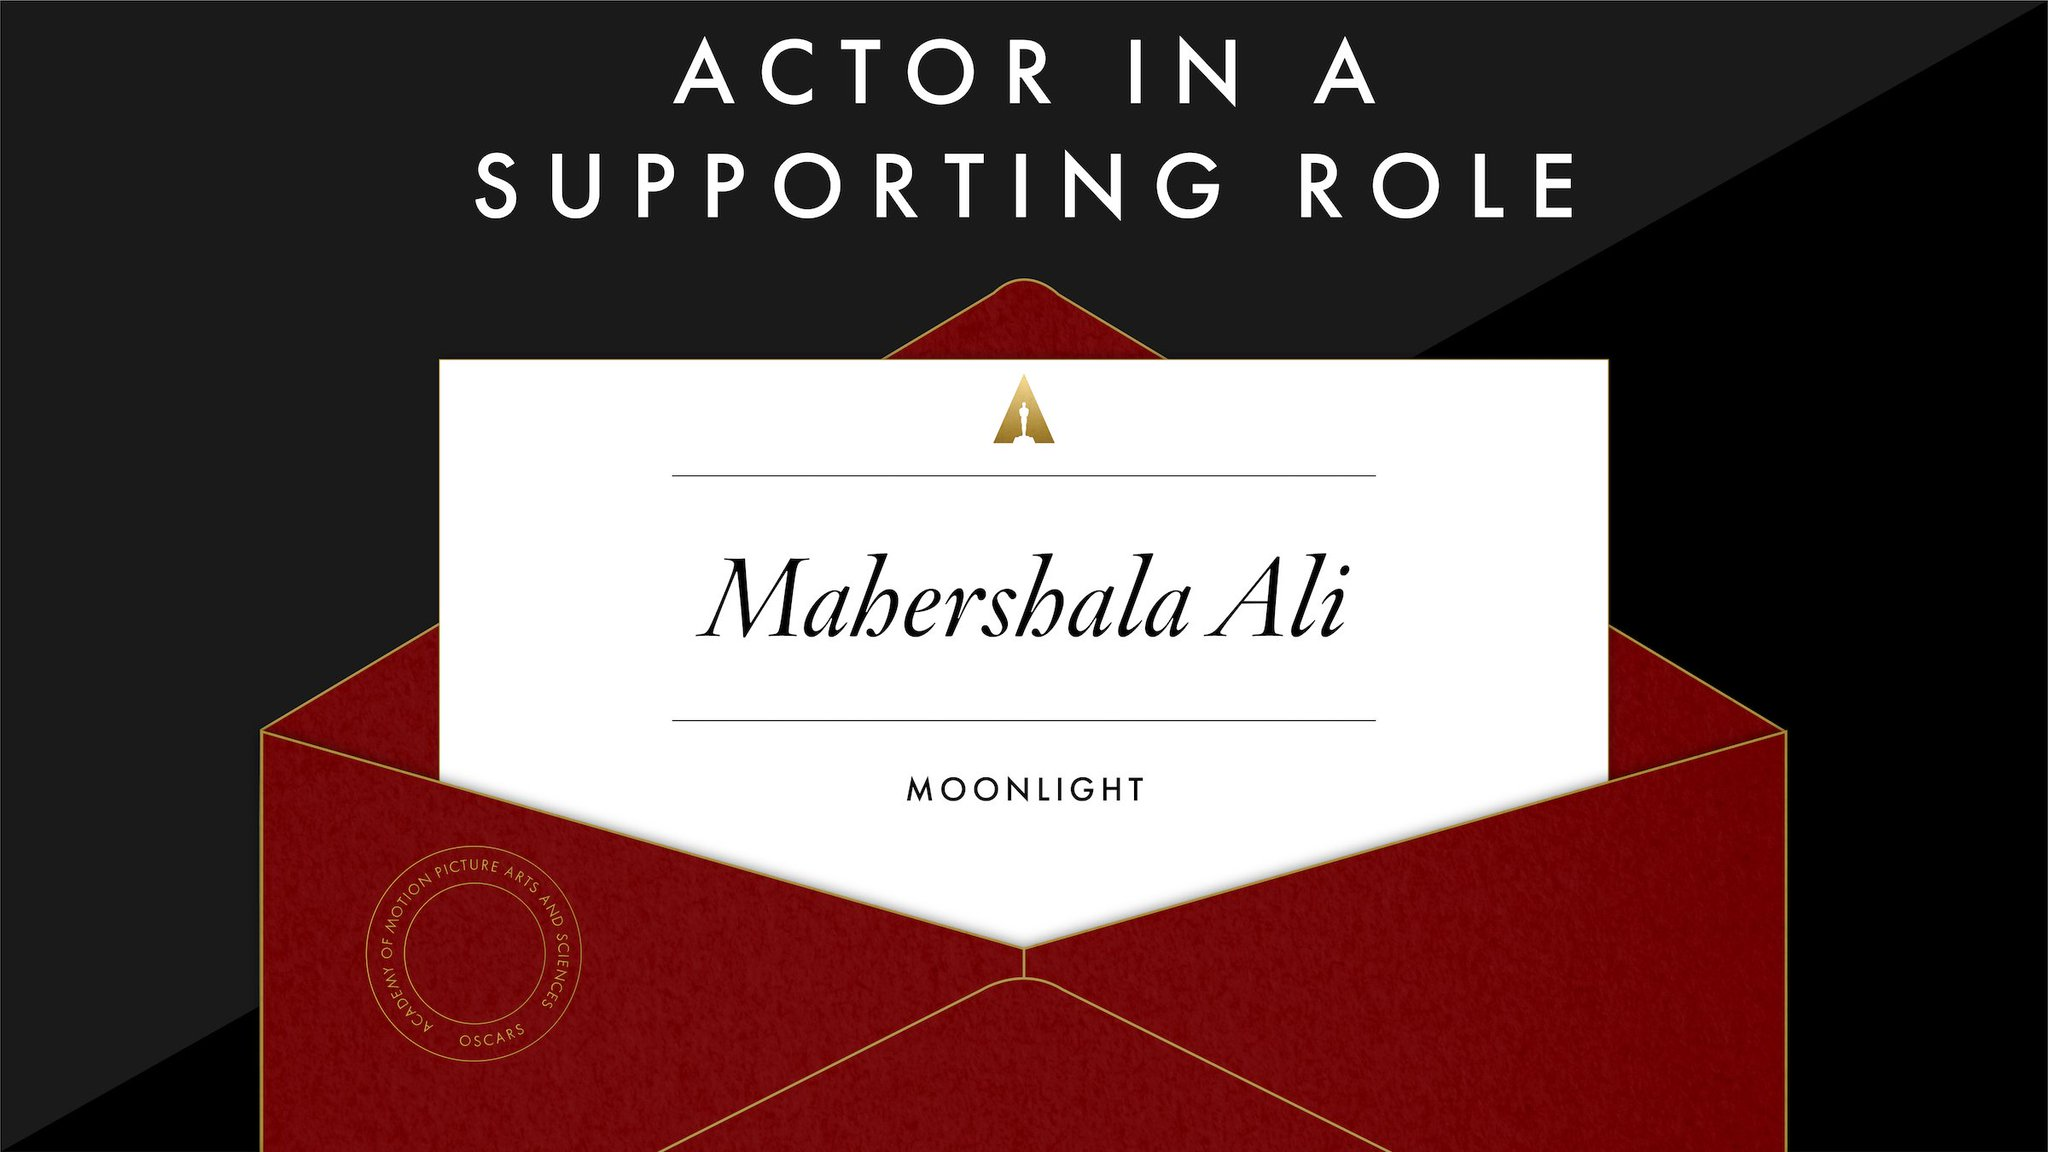 And the Oscar goes to…. https://t.co/D0mo2u2Grq